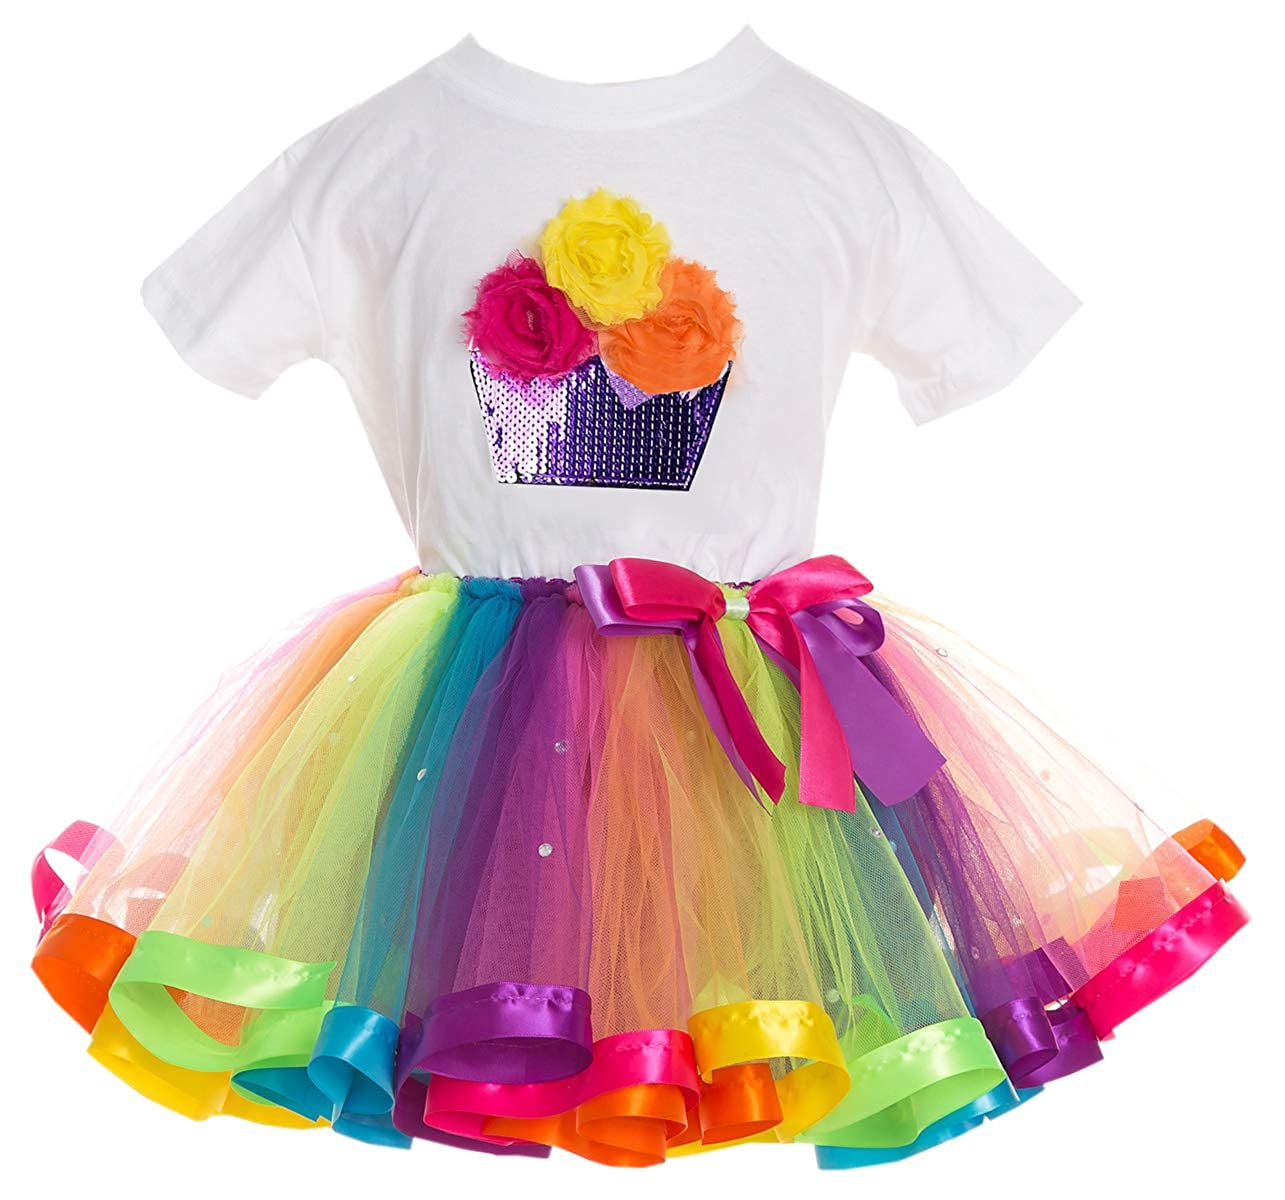 SANGTREE Girls Outfit T Shirt and Tutu Skirt Set